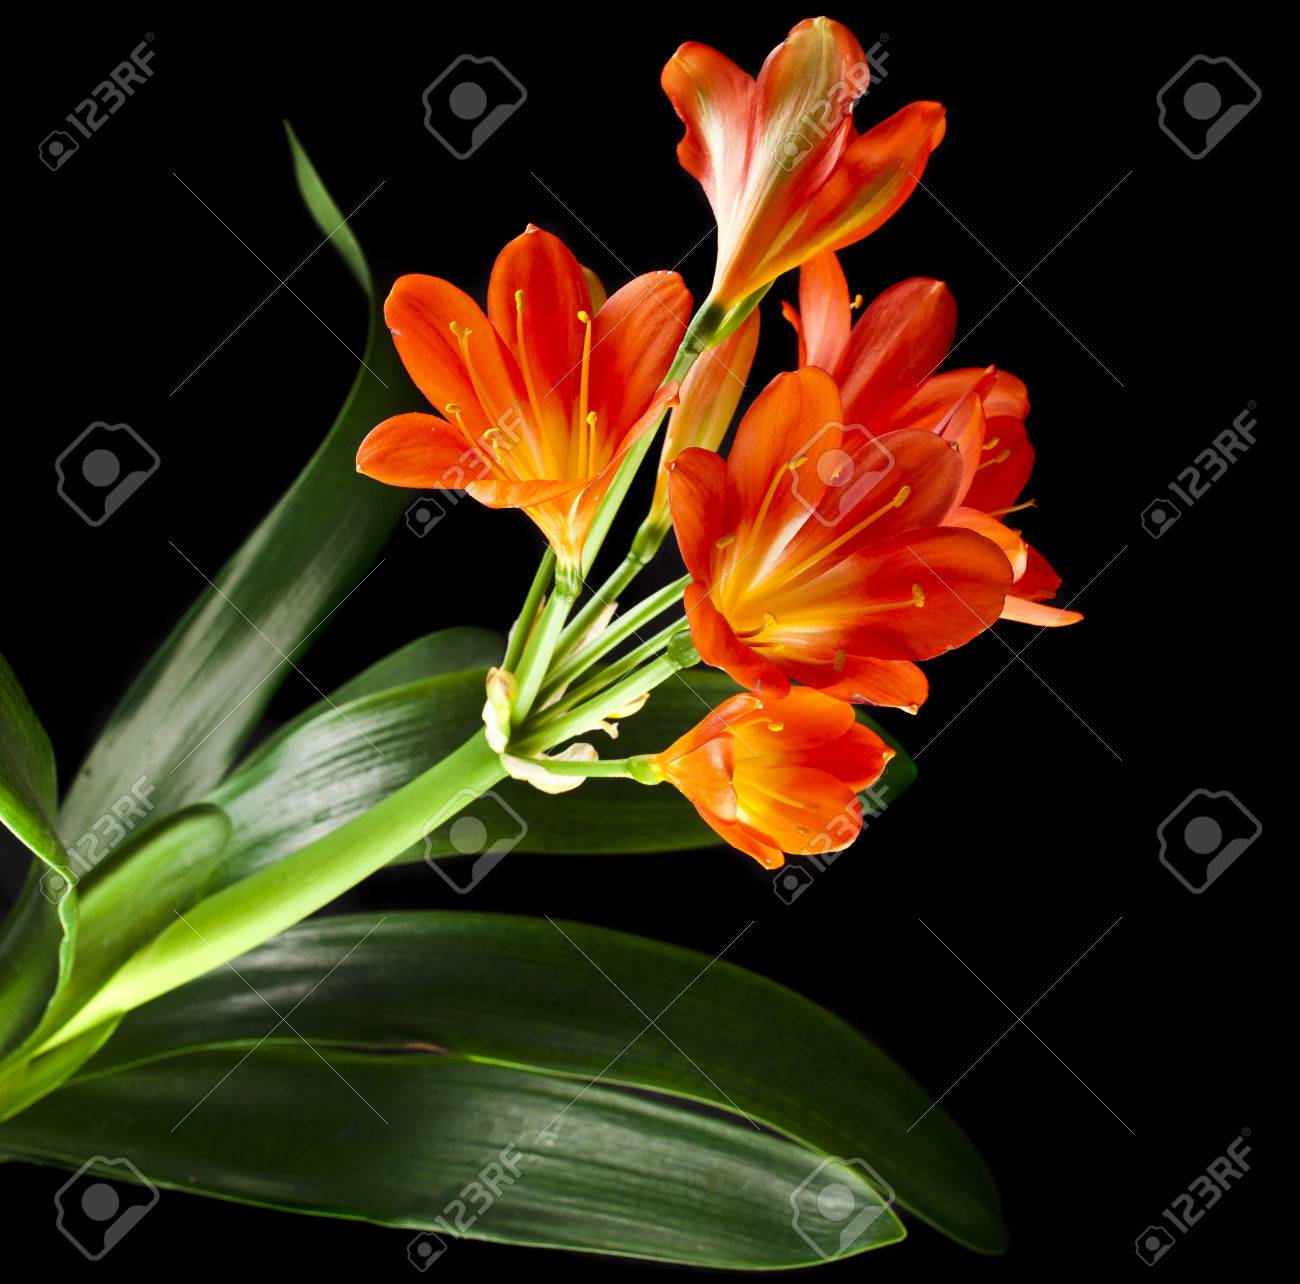 Orange Color Flowers Of Lily Of Clivia Kind Isolated On Black